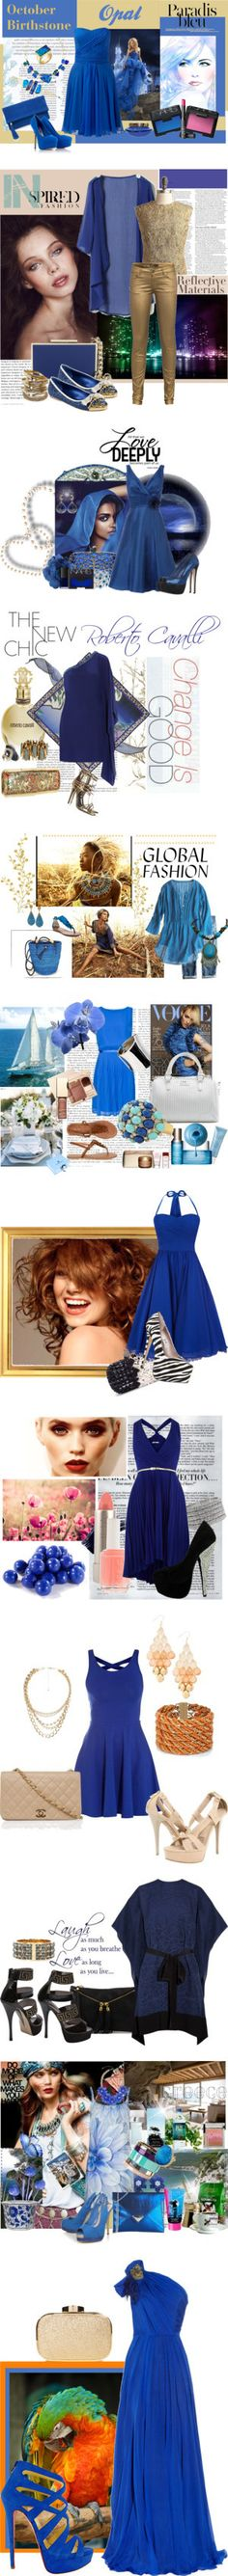 """Blue 2"" by elena-indolfi on Polyvore"